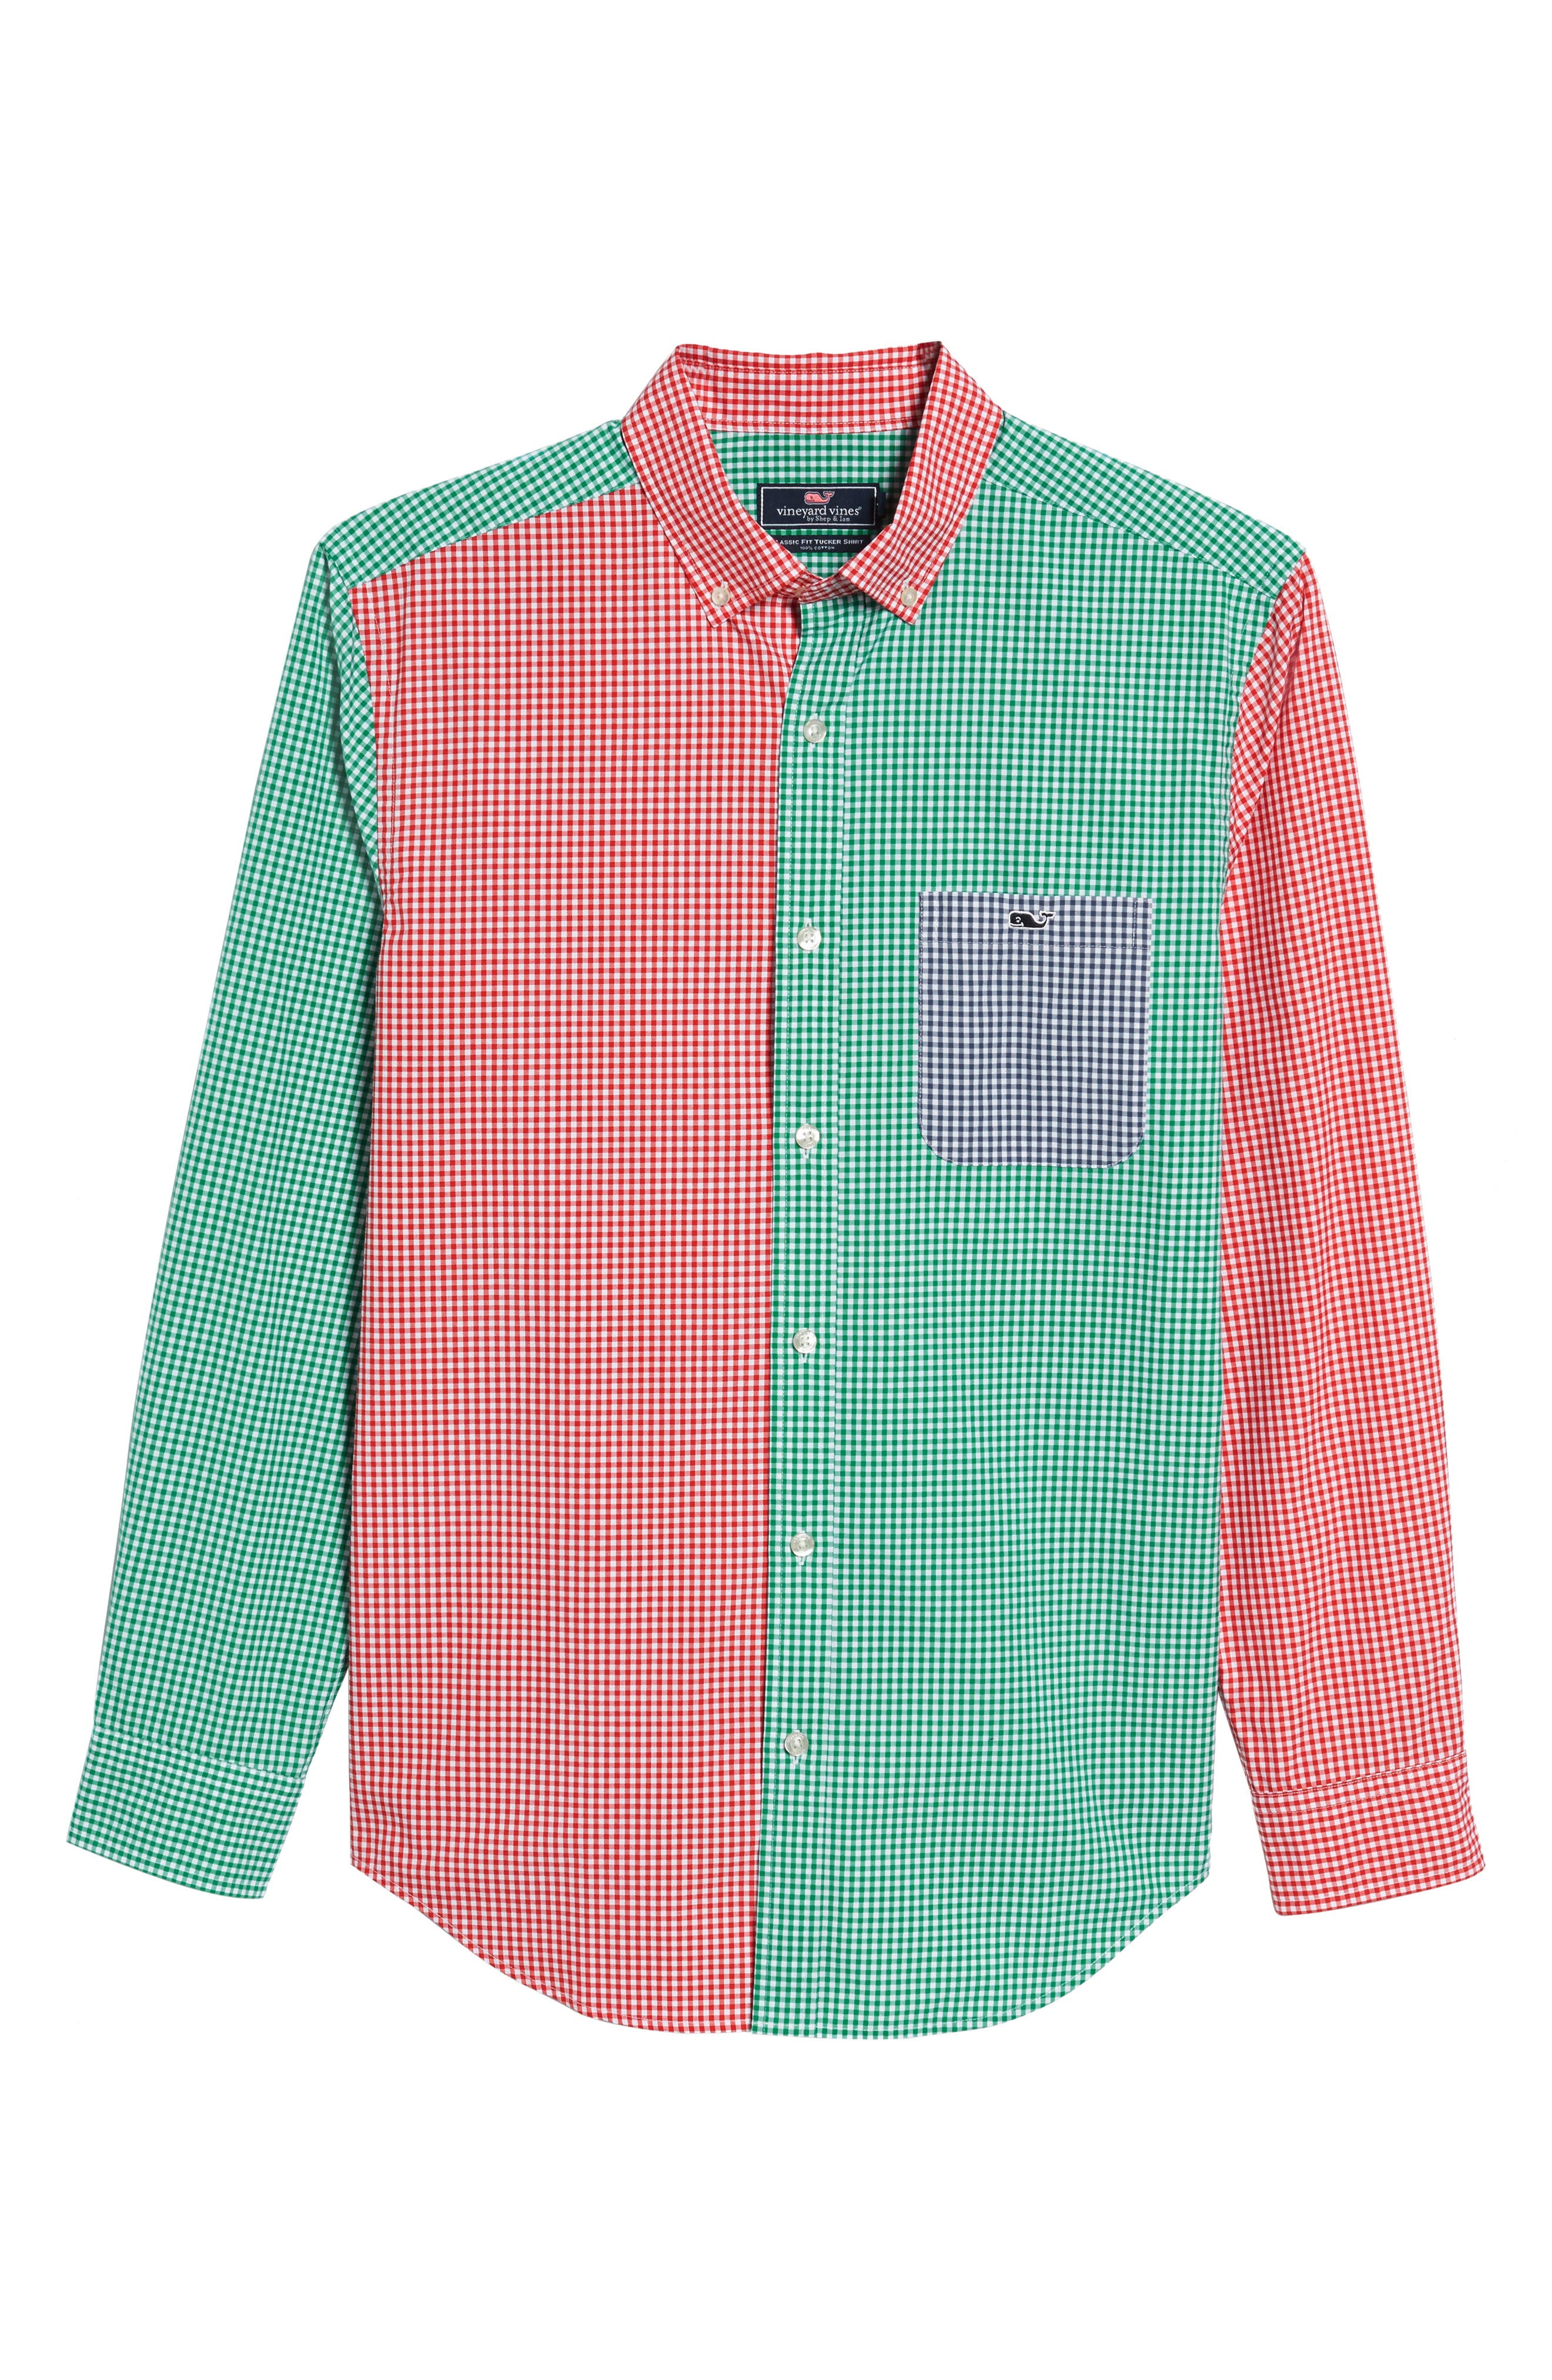 Holiday Party Classic Fit Colorblock Sport Shirt,                             Alternate thumbnail 6, color,                             Multi